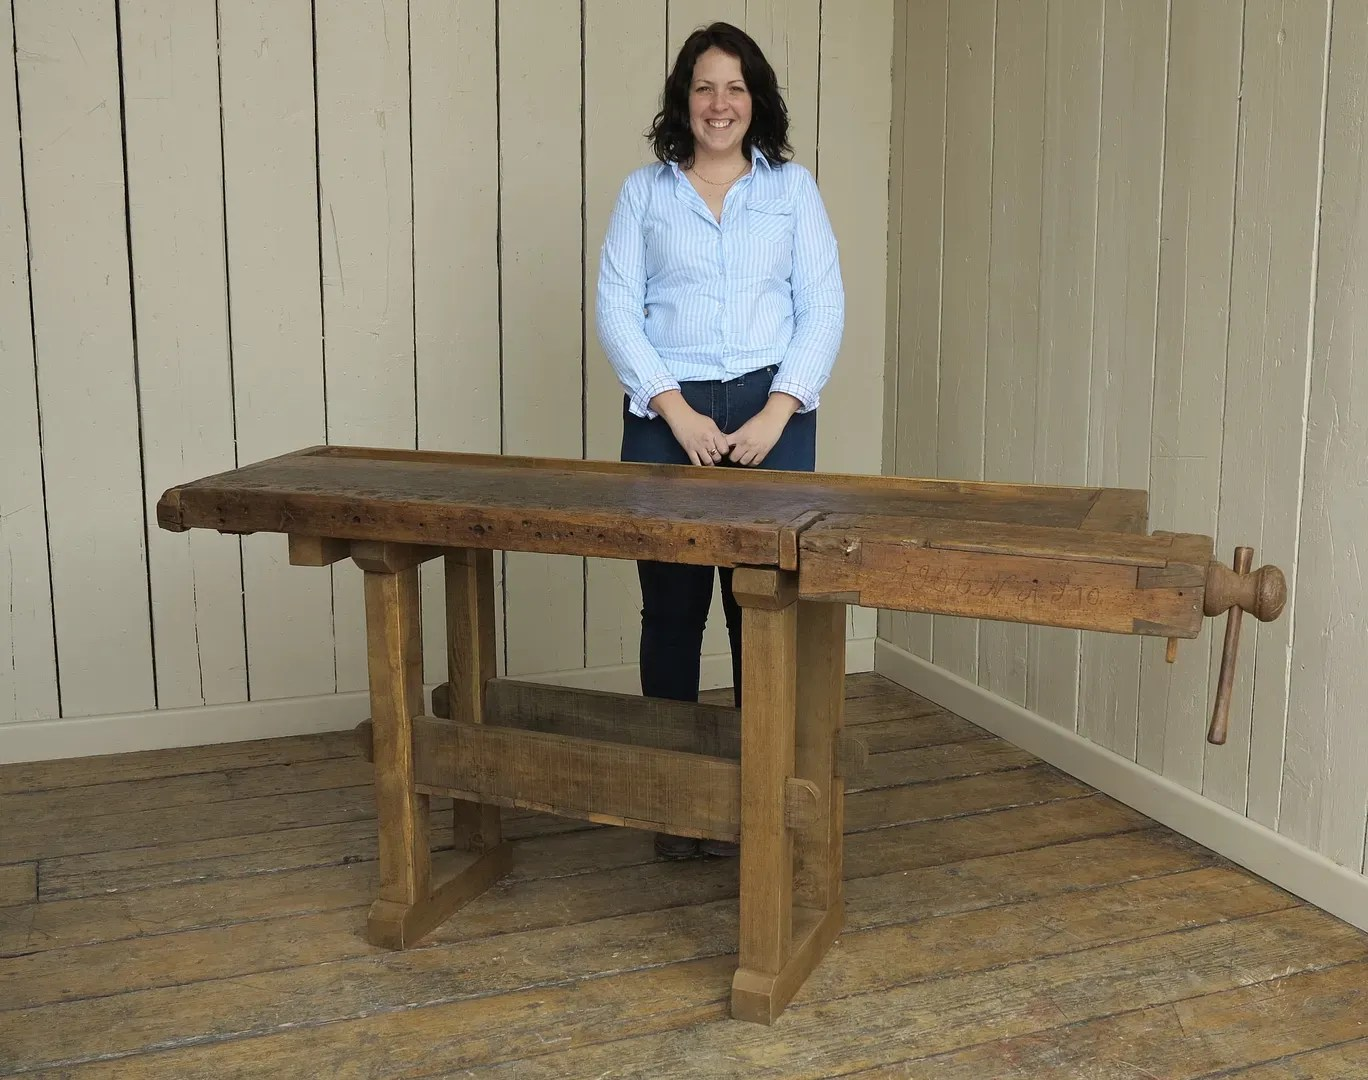 Antique Woodworking Vintage Bench With Vice And Shelf